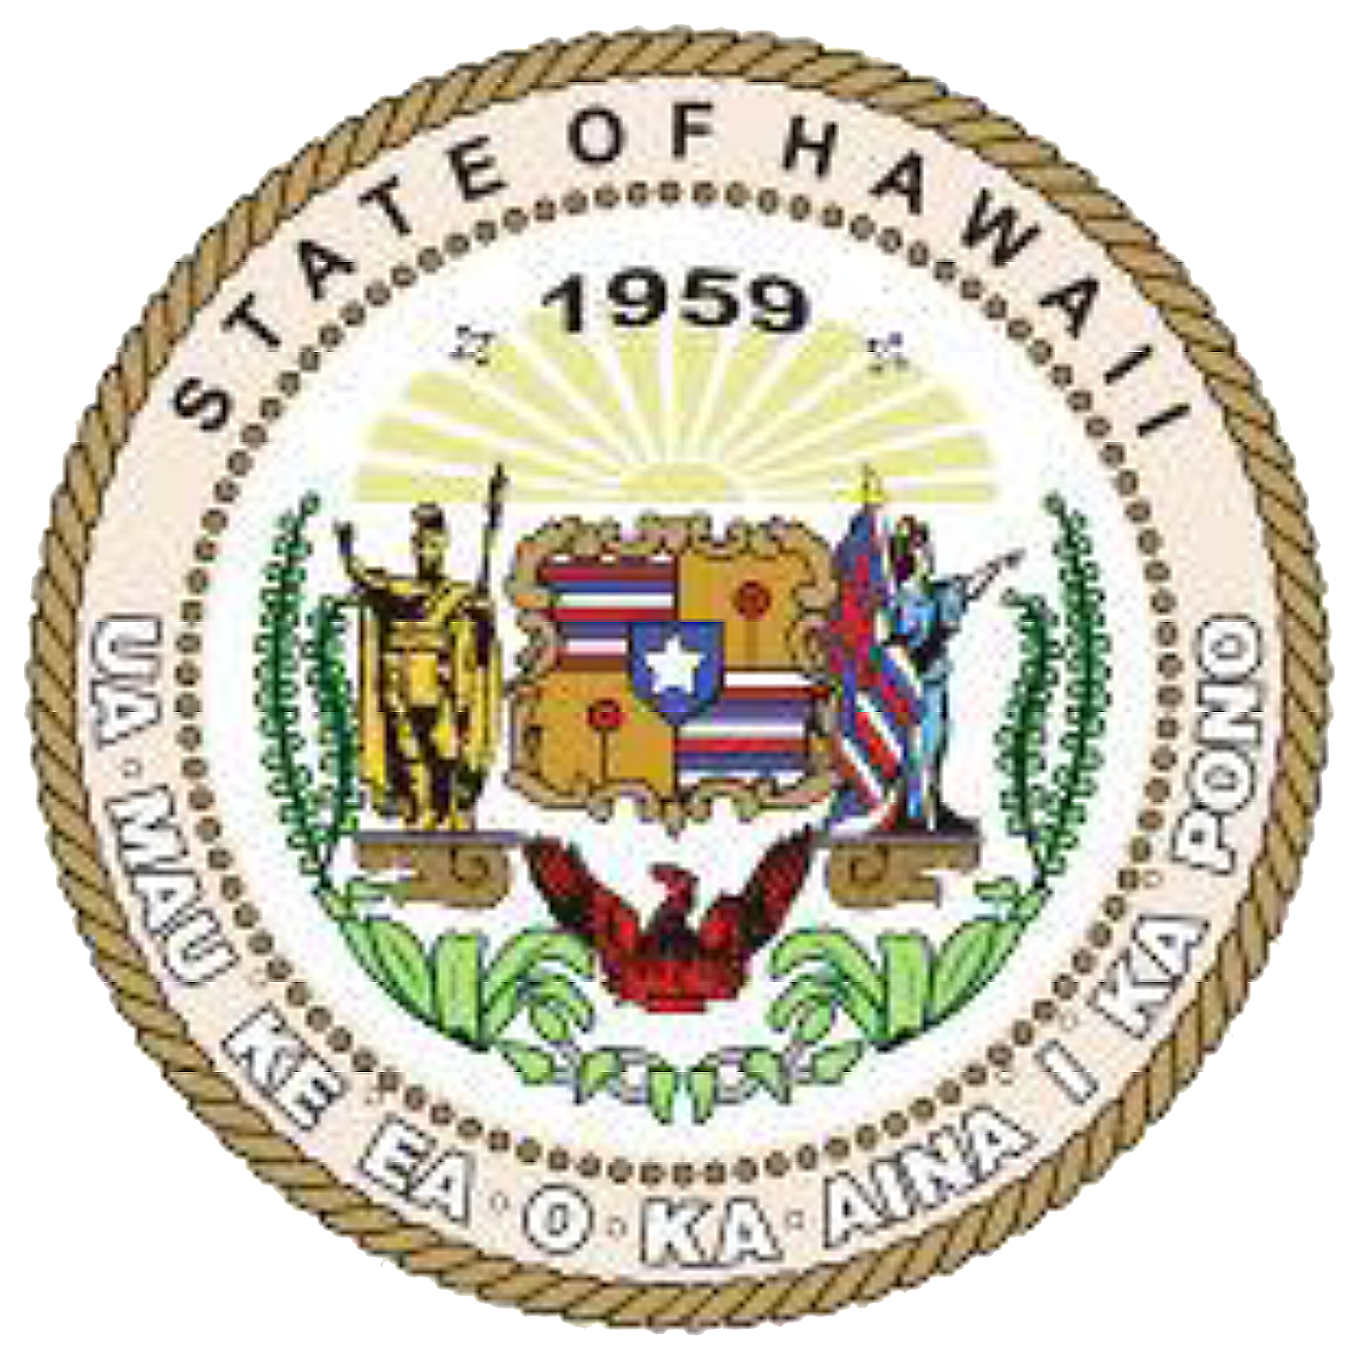 Hawaii state department of health marriage certificate